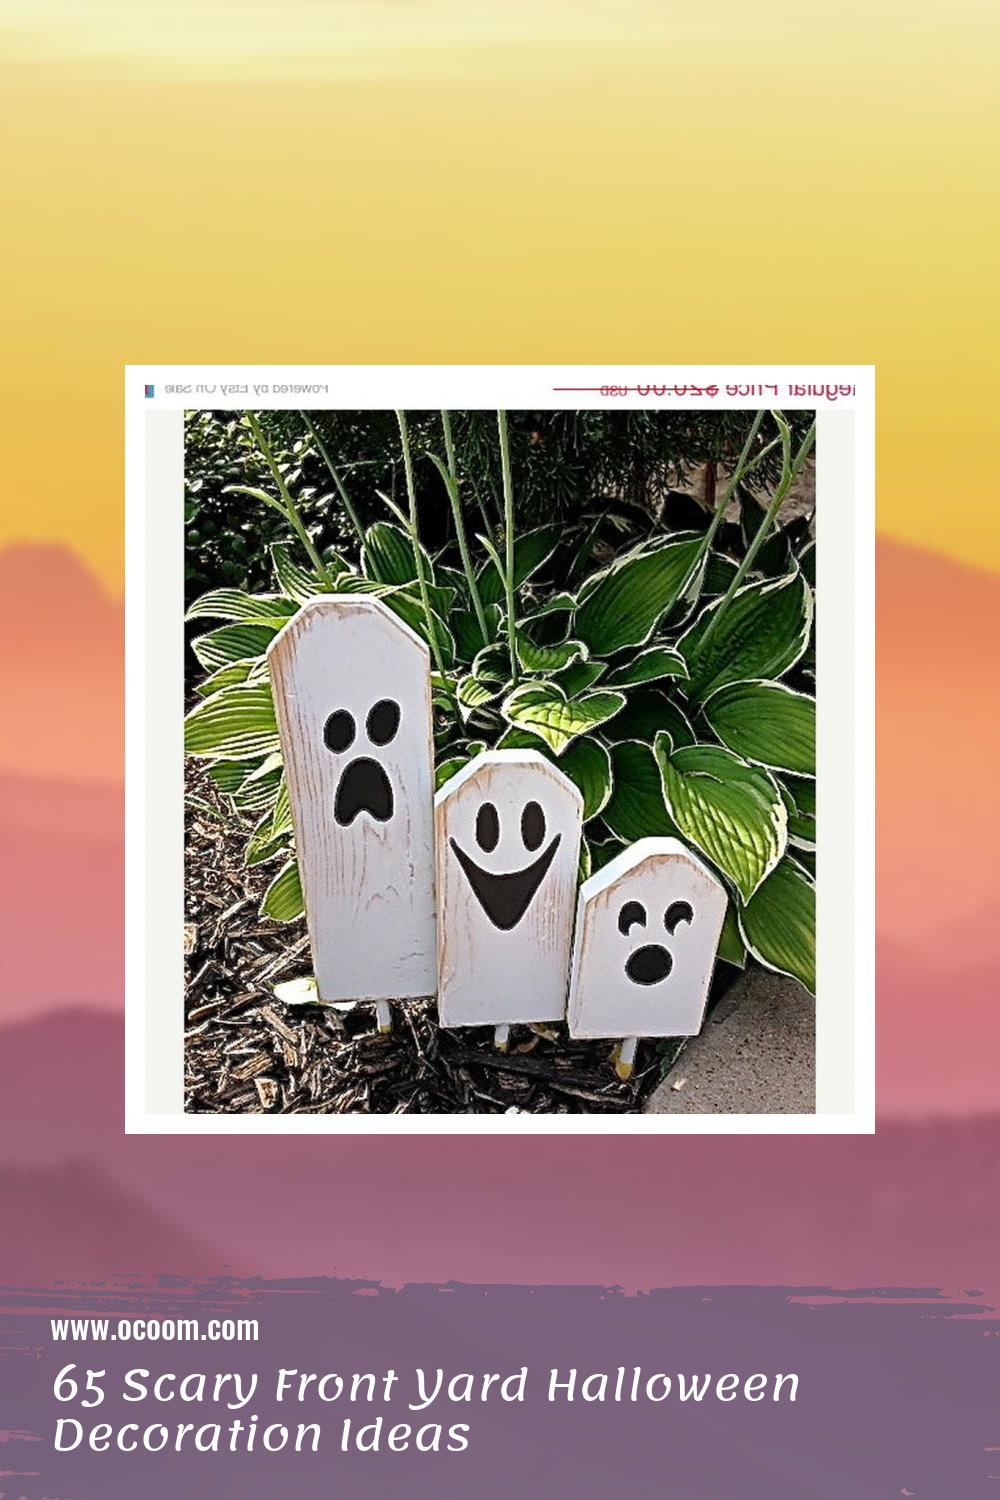 65 Scary Front Yard Halloween Decoration Ideas 12